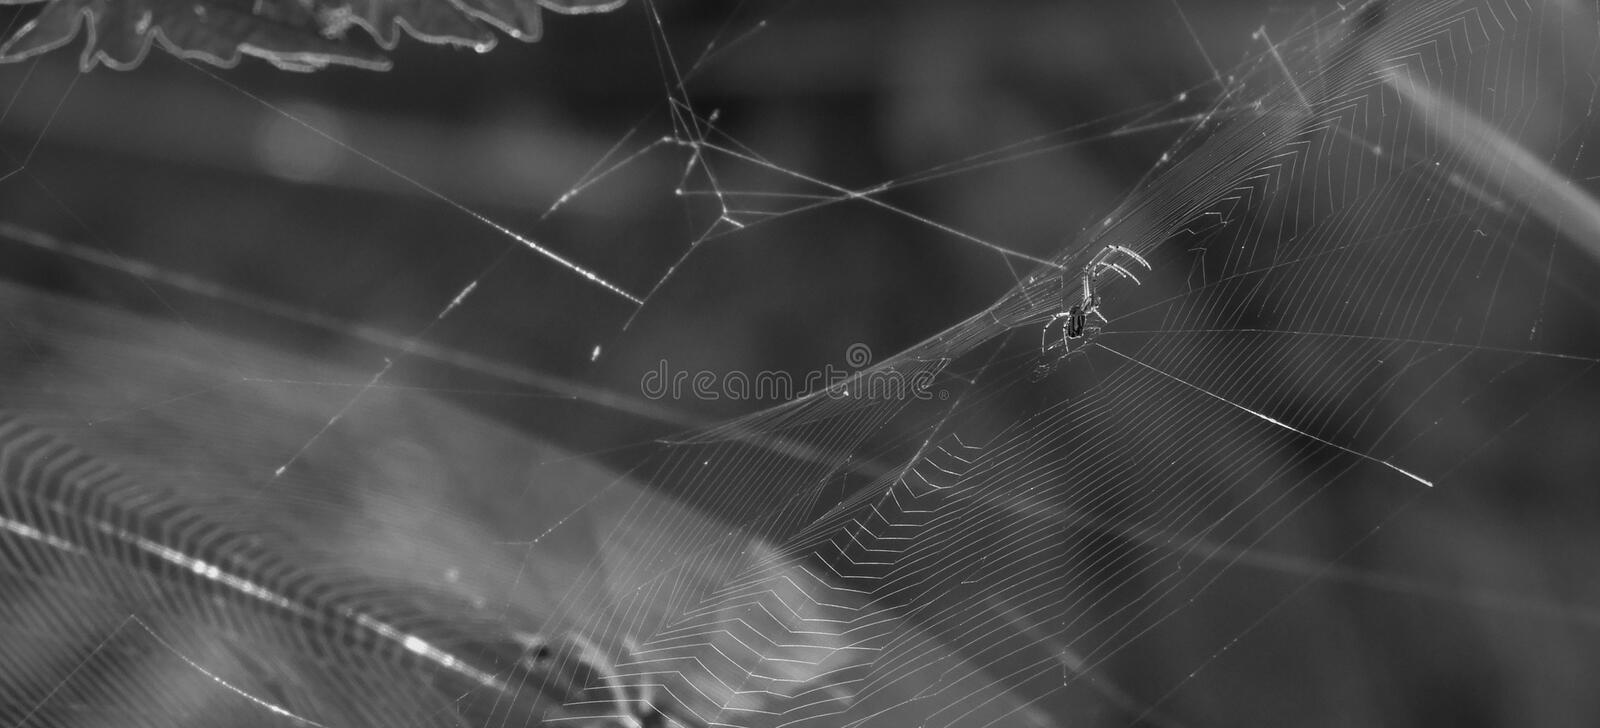 Spider Web, Black, Black And White, Monochrome Photography stock image